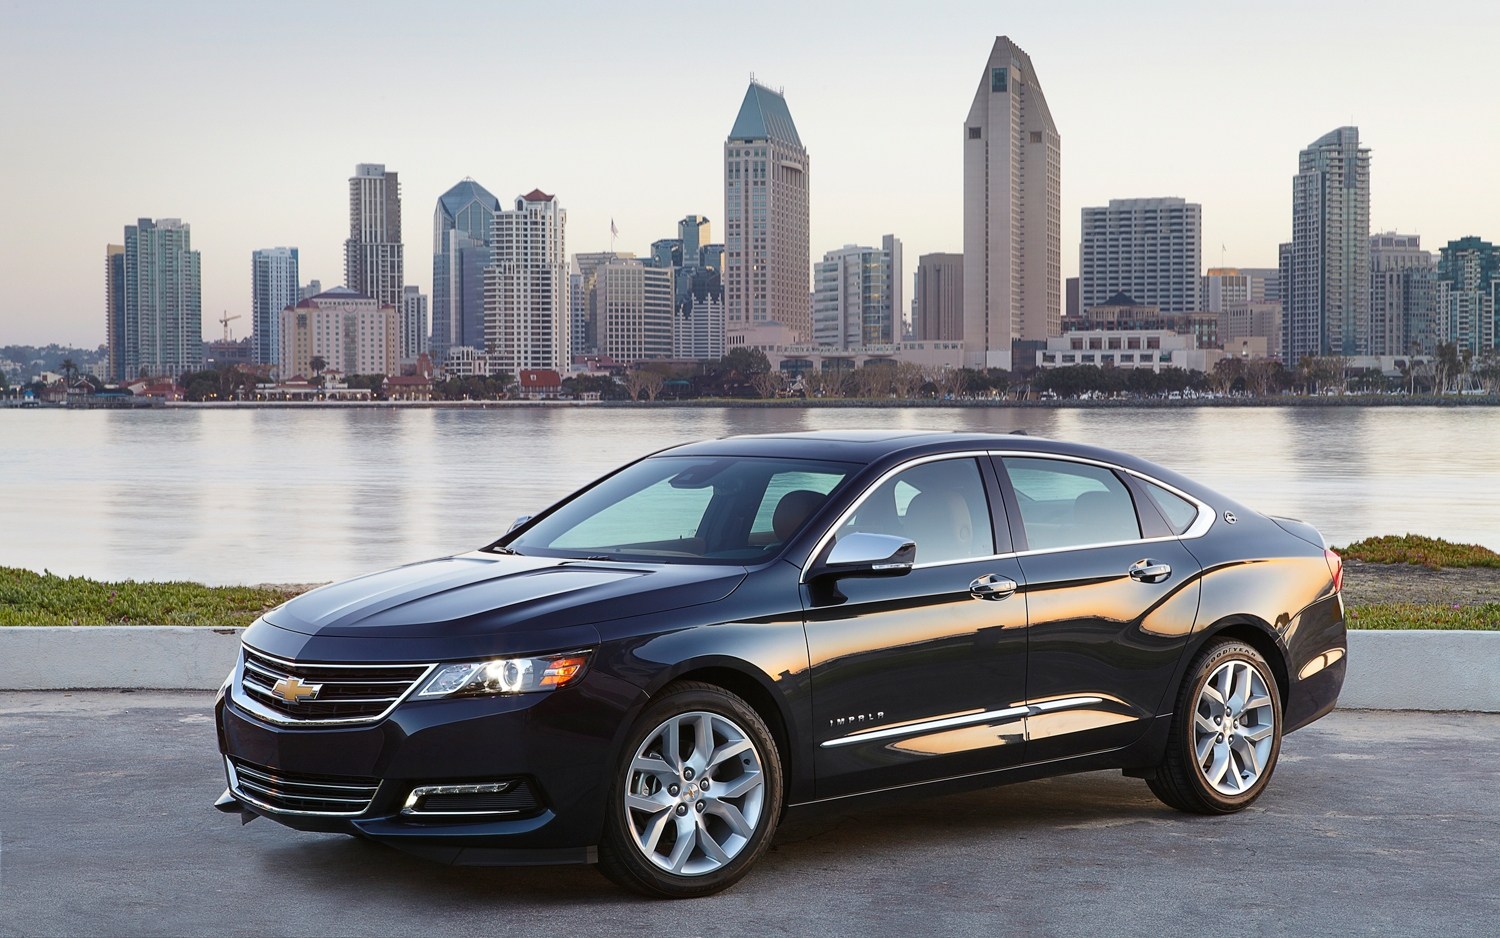 2014-Chevrolet-Impala-Awesome-Wallpapers